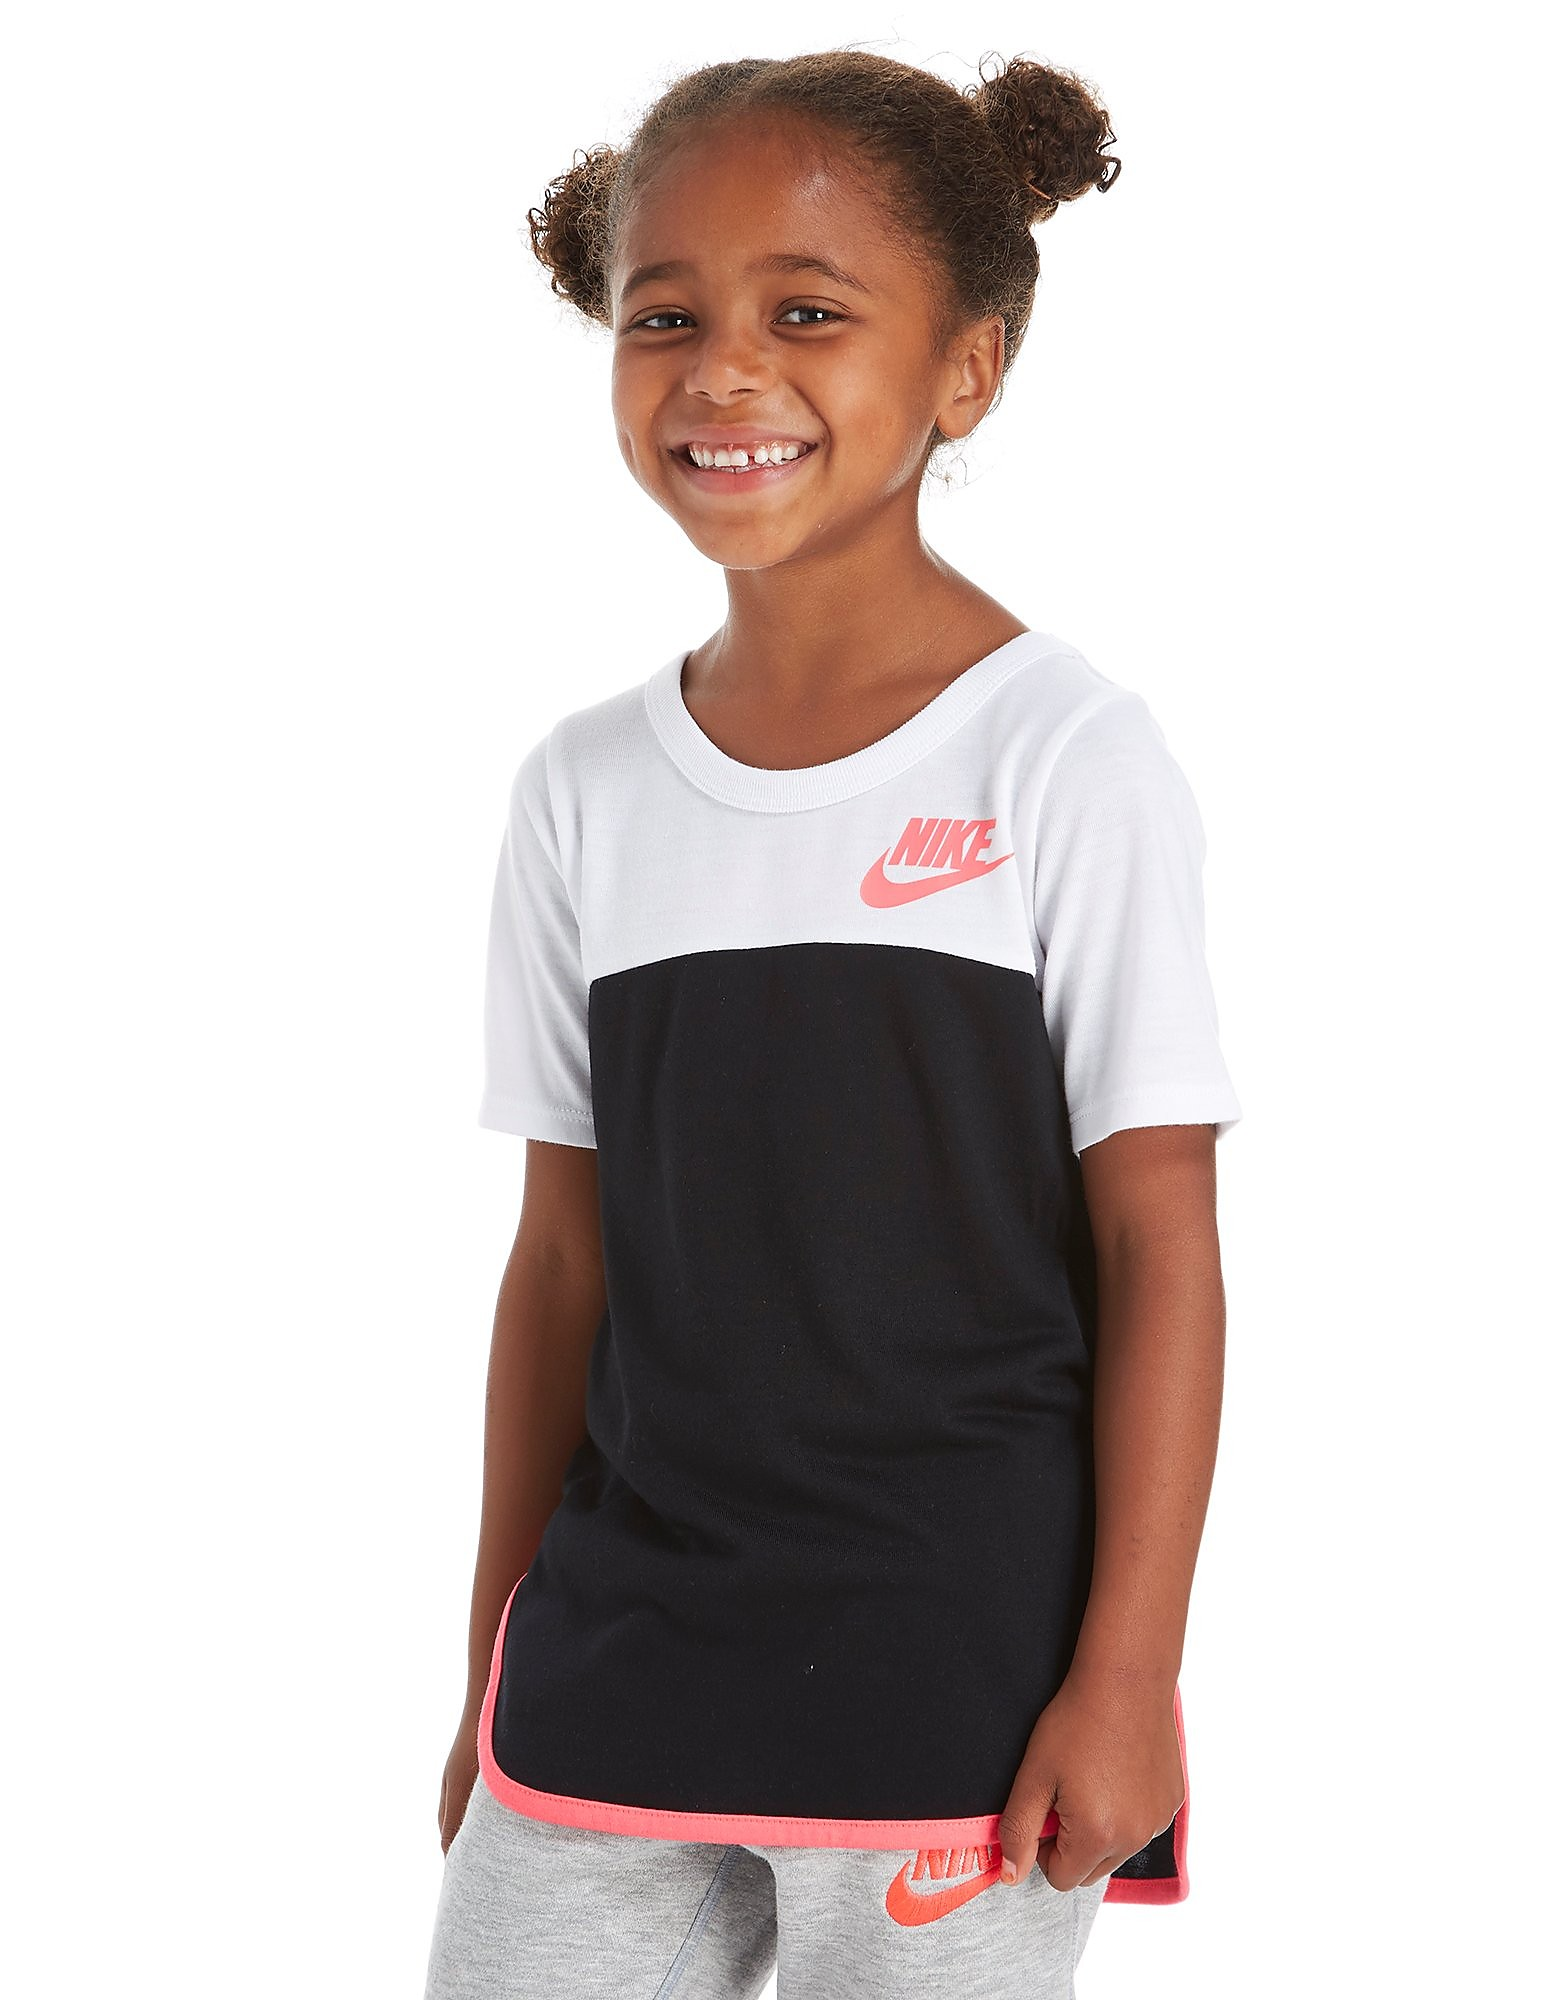 Nike Girls' Prep T-Shirt Children